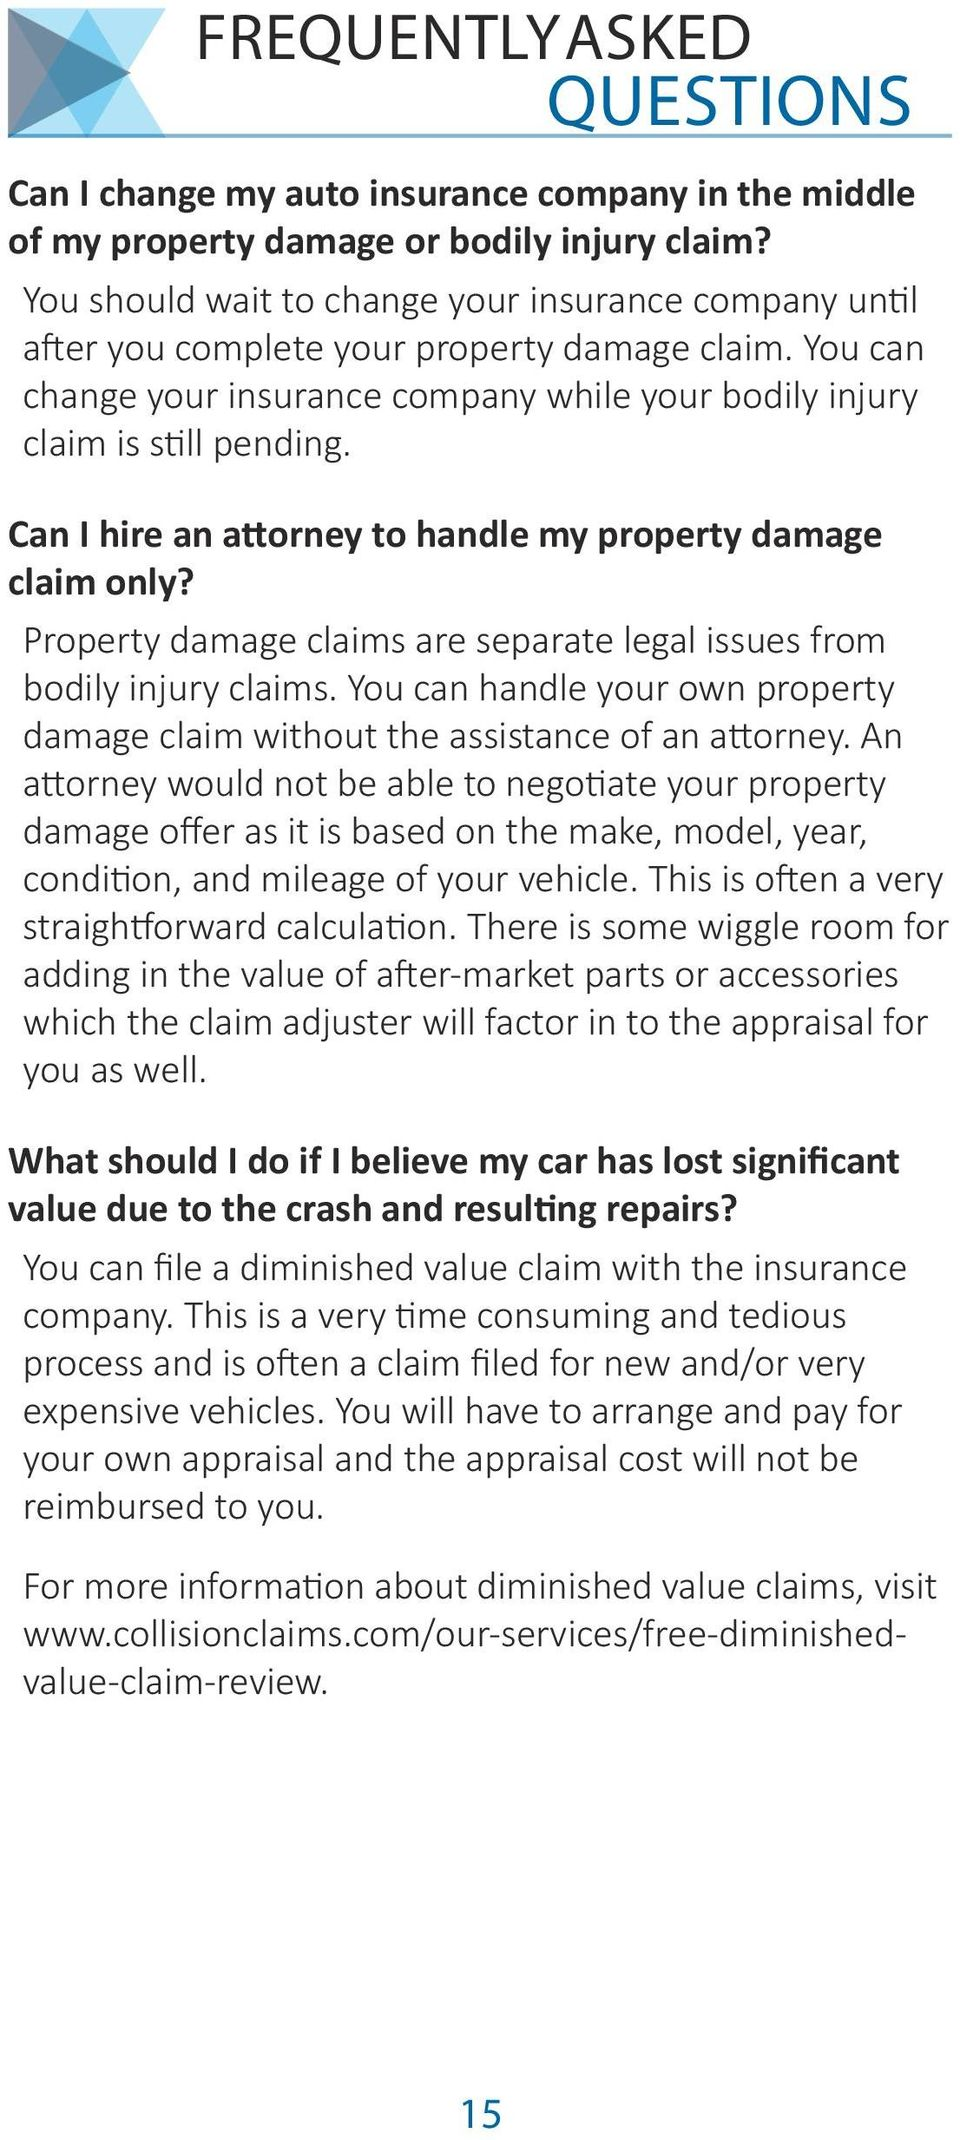 Can I hire an attorney to handle my property damage claim only? Property damage claims are separate legal issues from bodily injury claims.